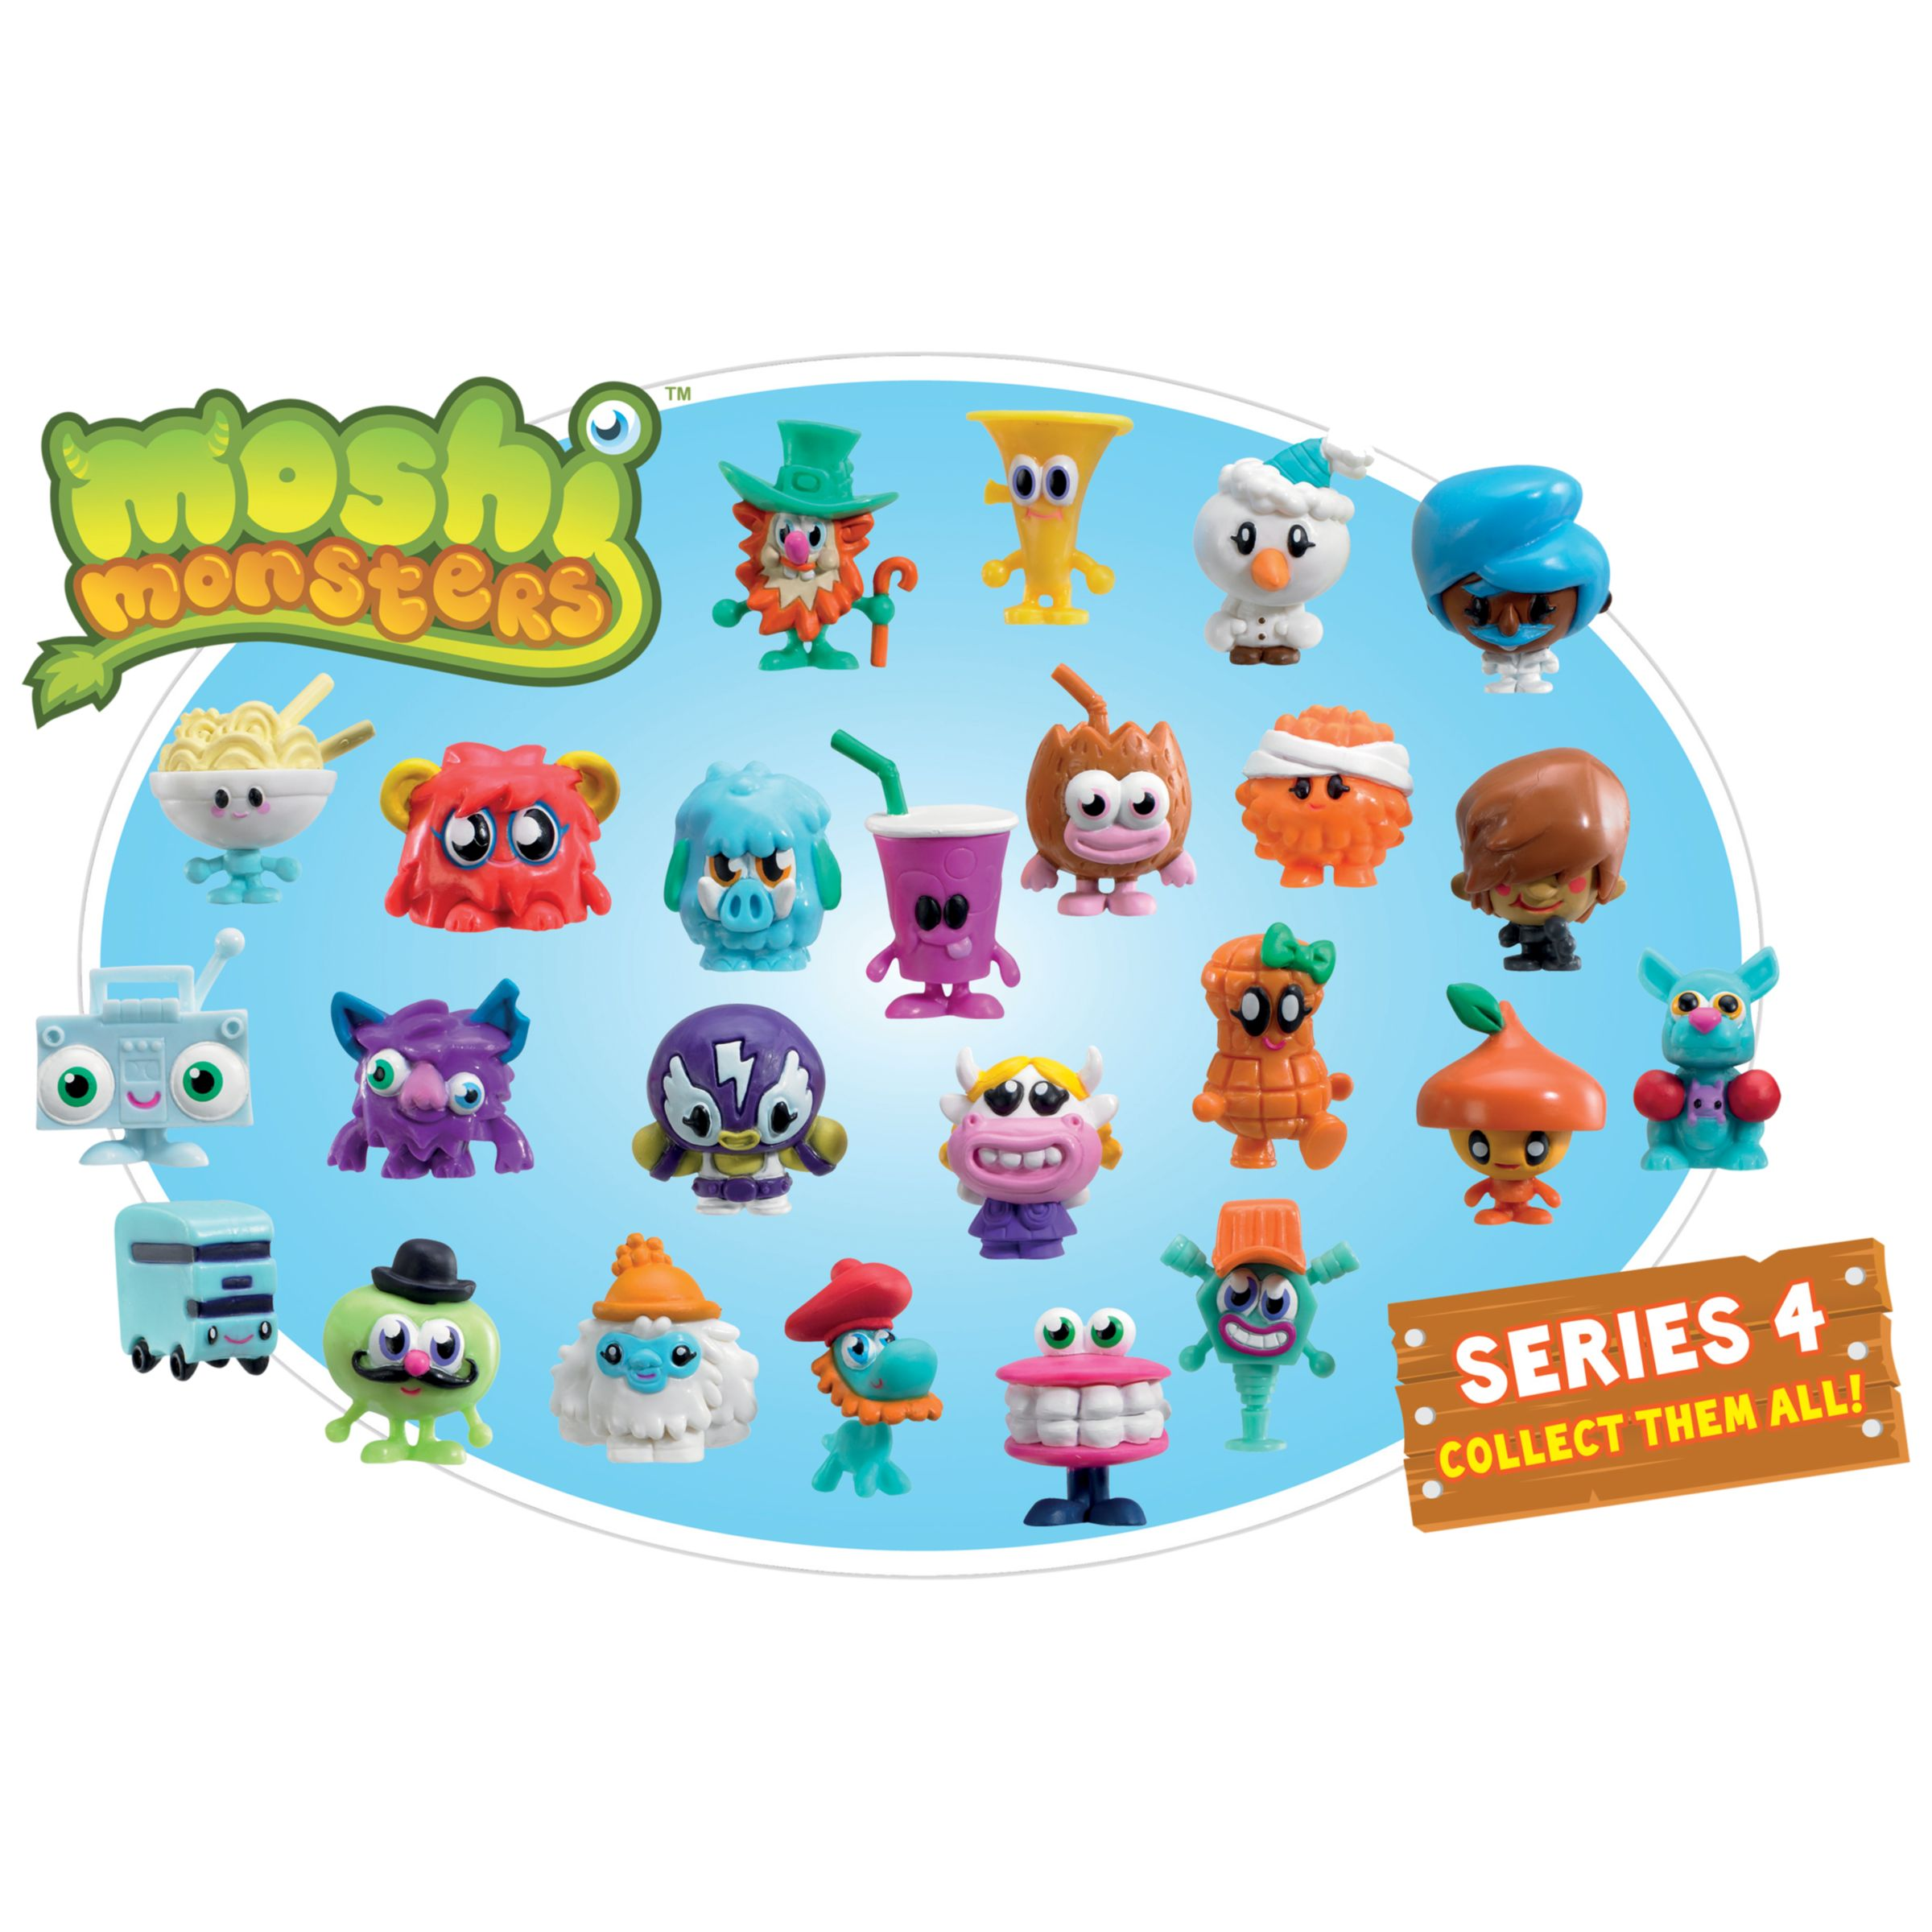 Moshi Monsters Blister Pack, Series 4, Assorted